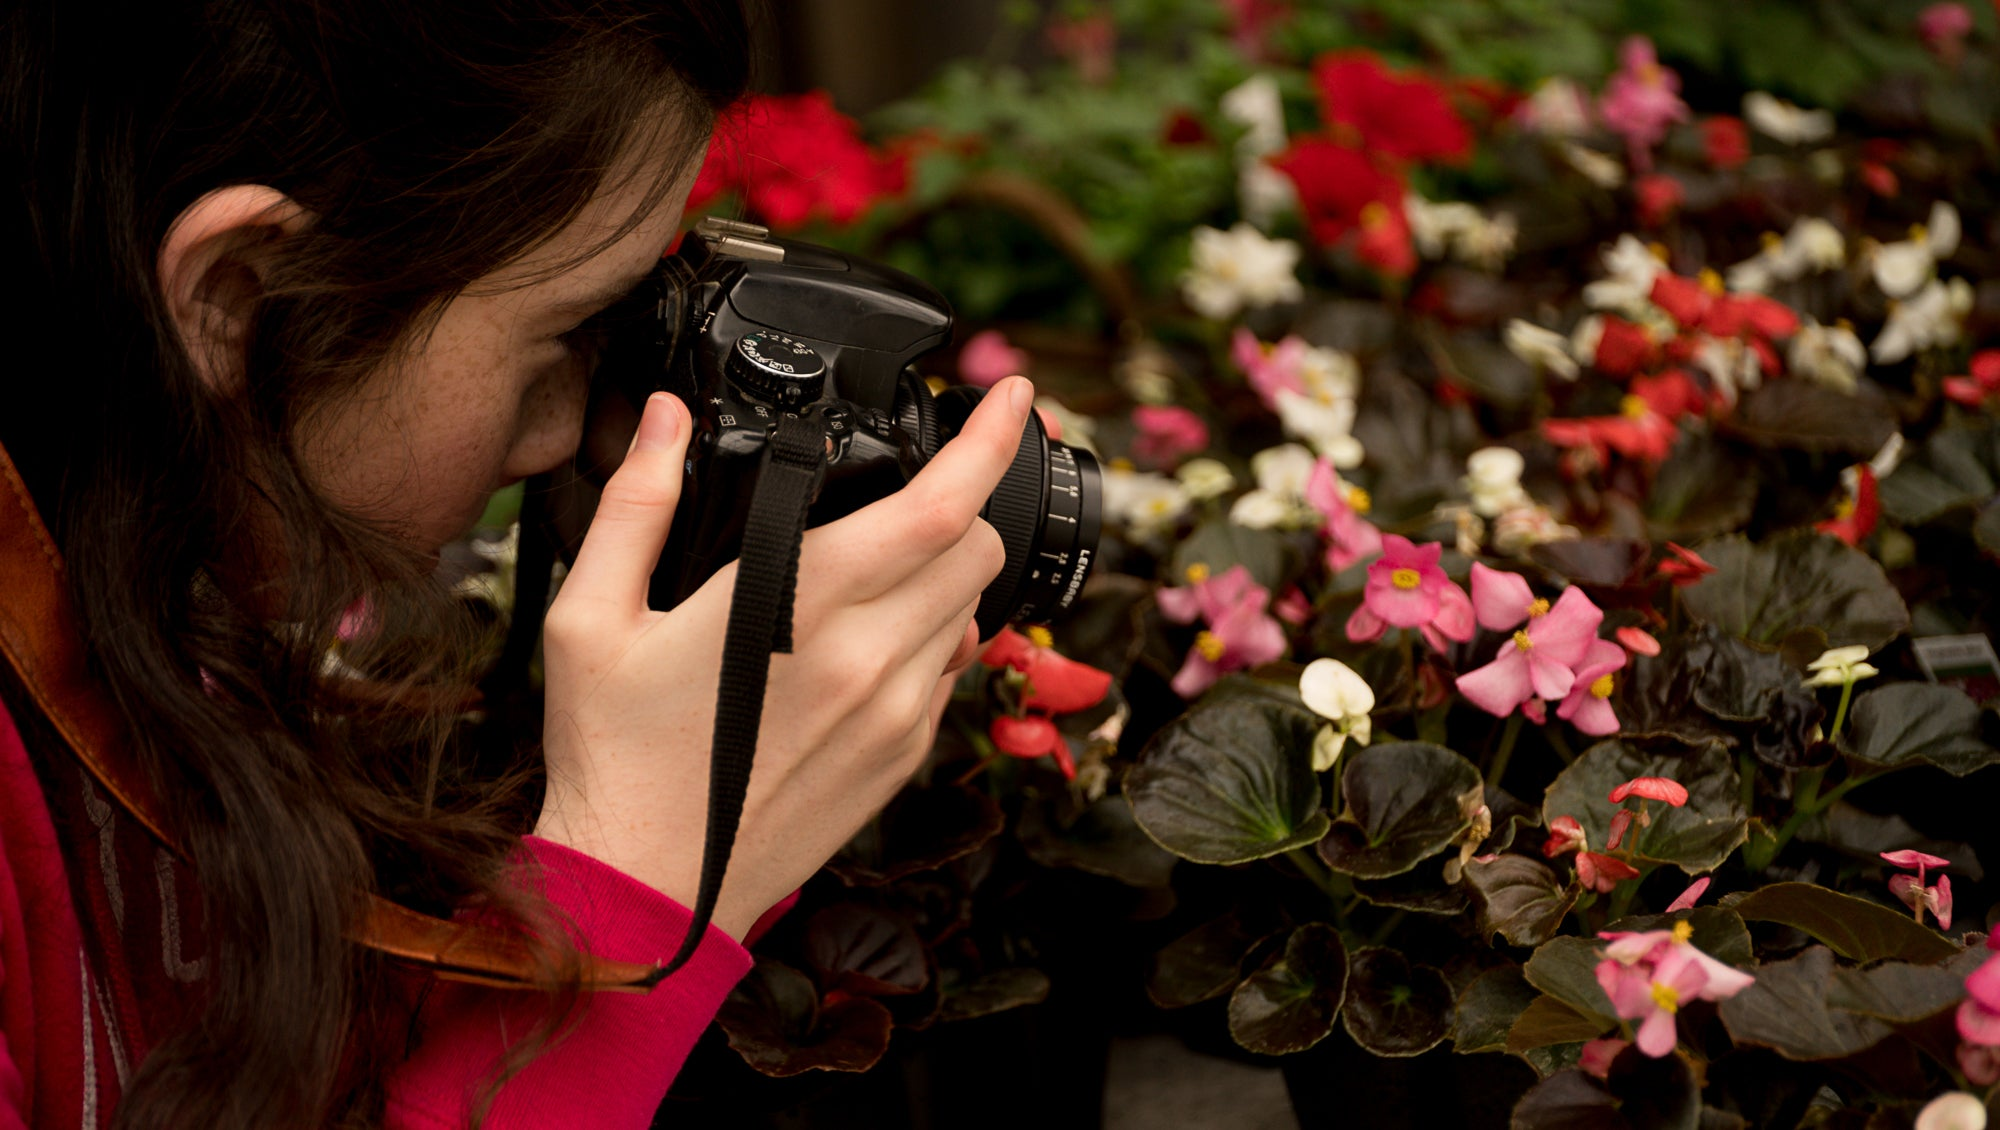 girl taking photos of flowers pink white and red photos Amy Cyphers Photography Adventures